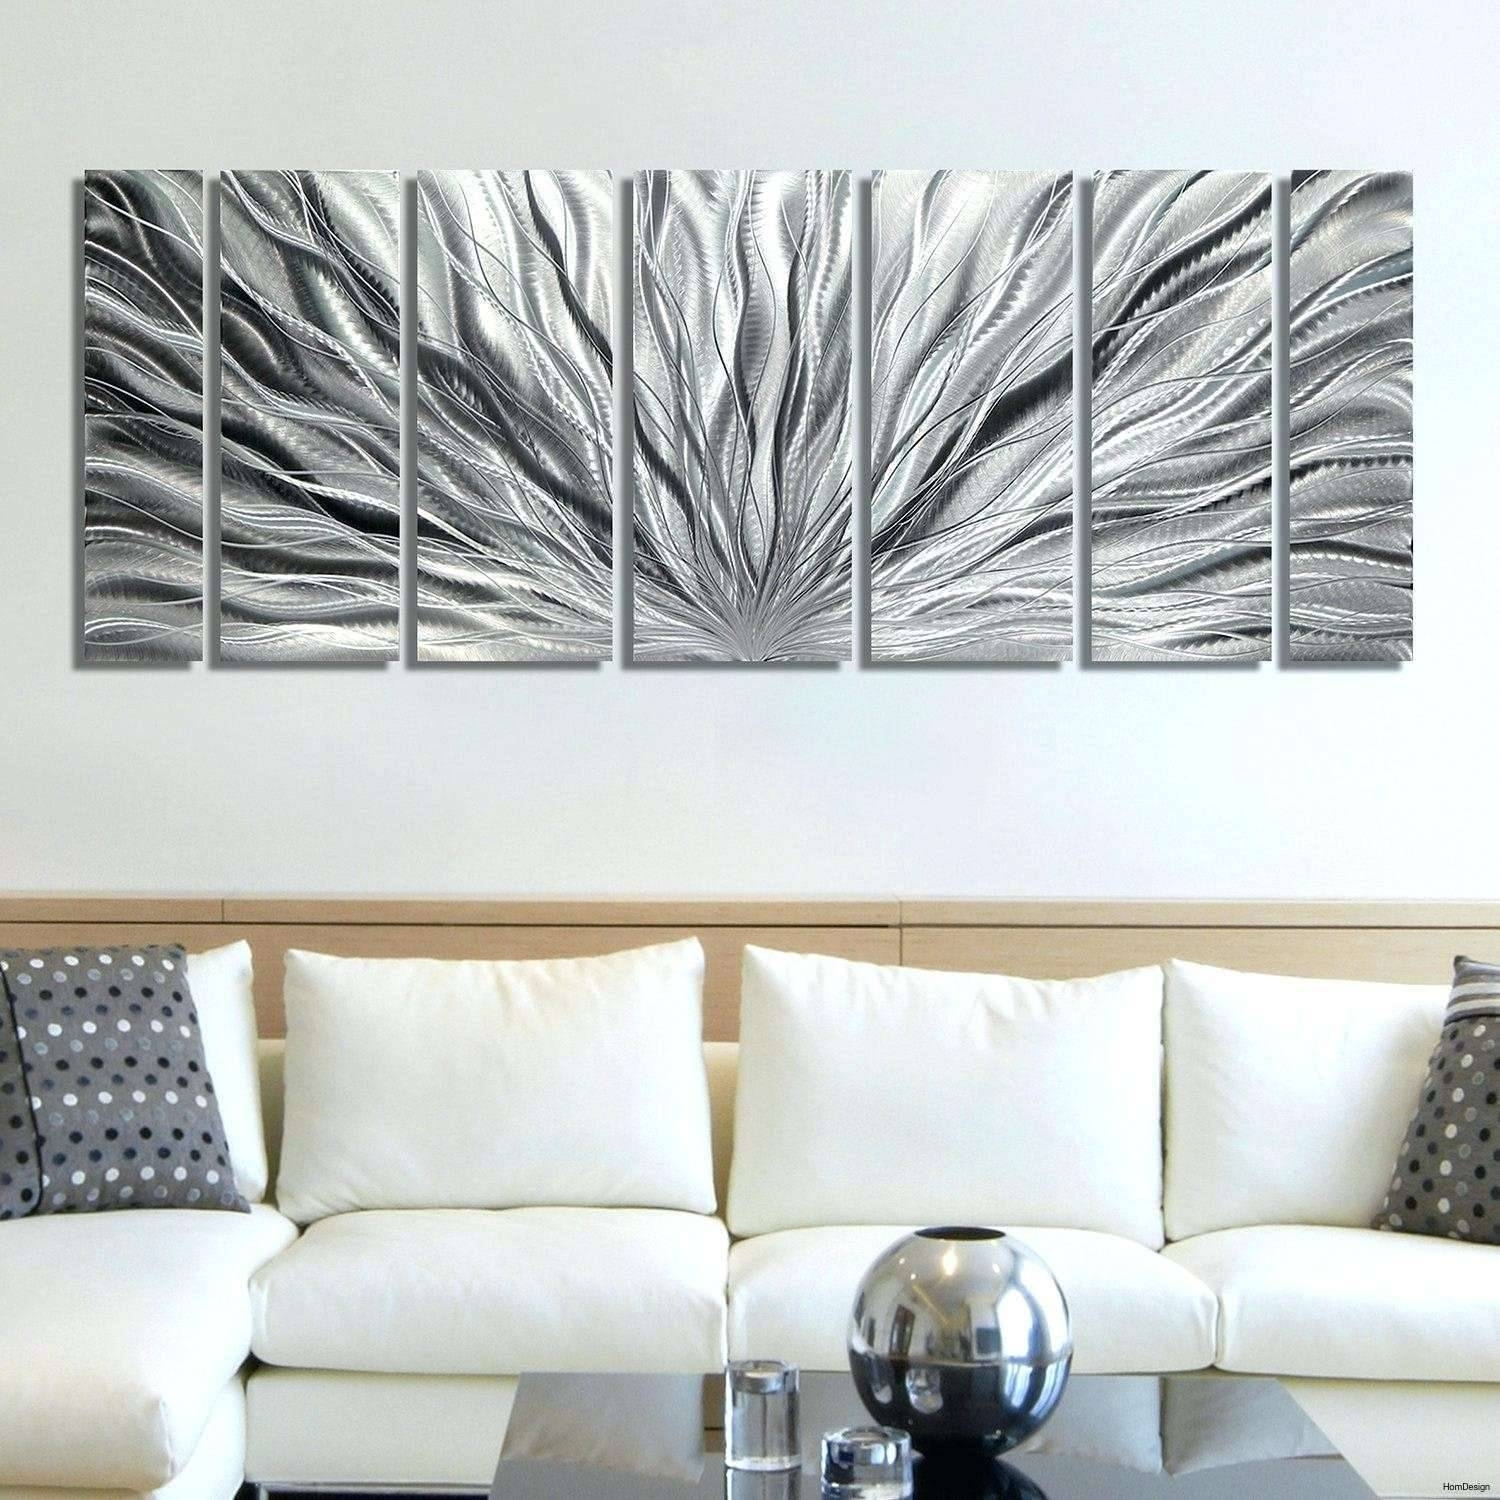 60 Awesome Framed Wall Art For Living Room | Downtownerinmills Intended For Most Recently Released Framed Wall Art (View 3 of 15)